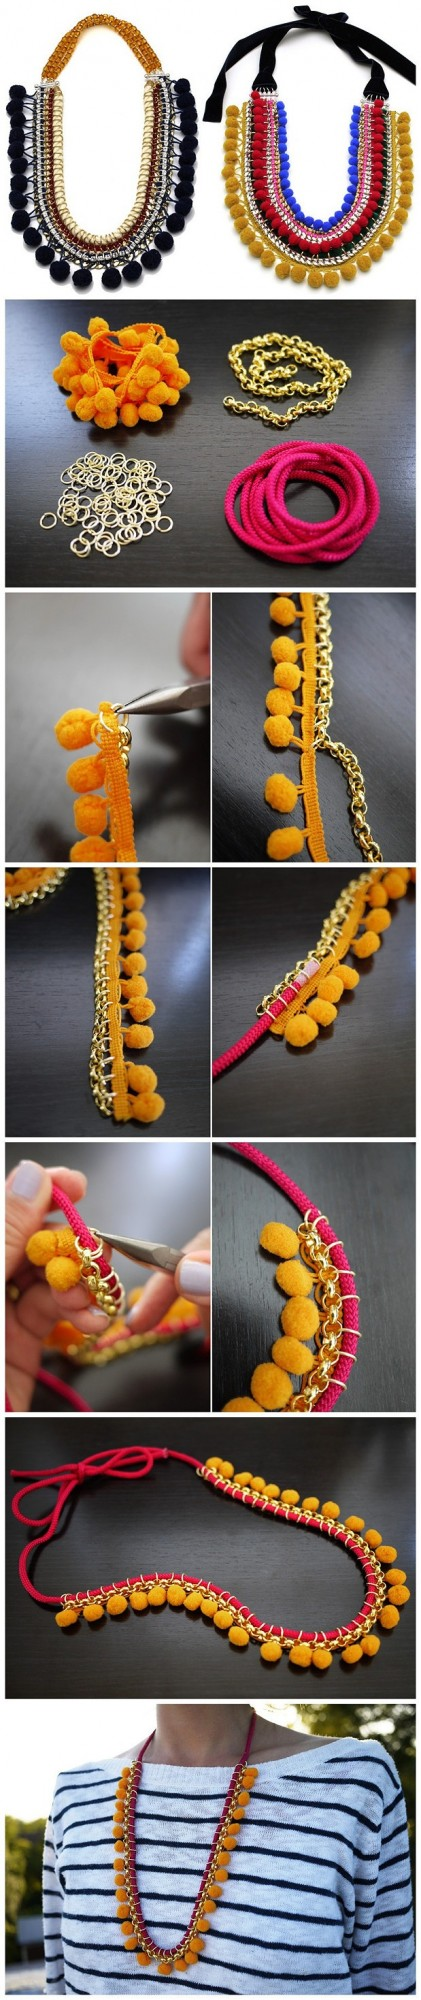 how to make statement necklace tutorial